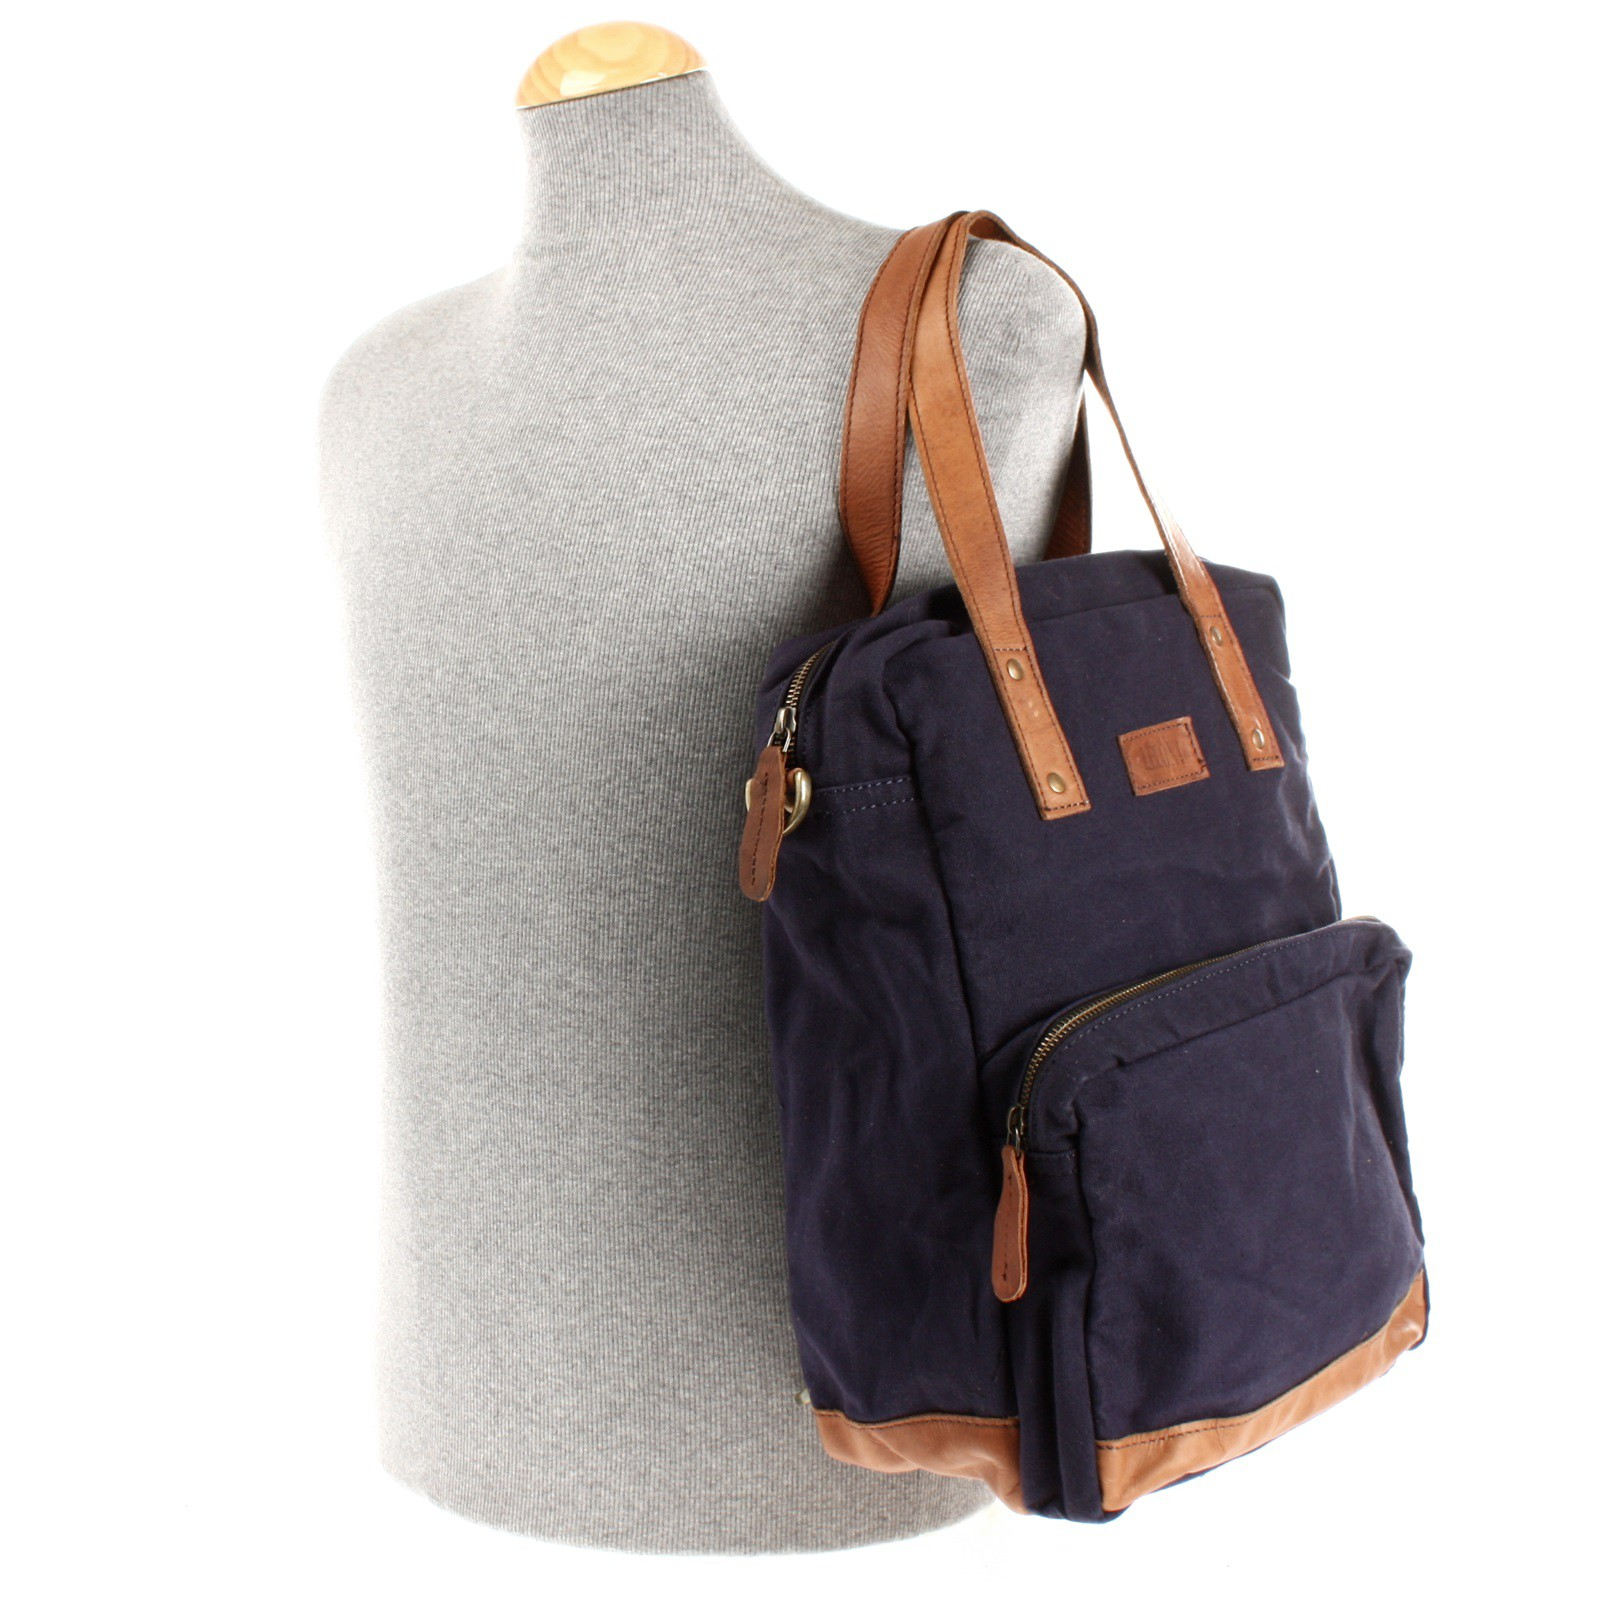 leconi rucksack umh ngetasche canvas navy le1014. Black Bedroom Furniture Sets. Home Design Ideas